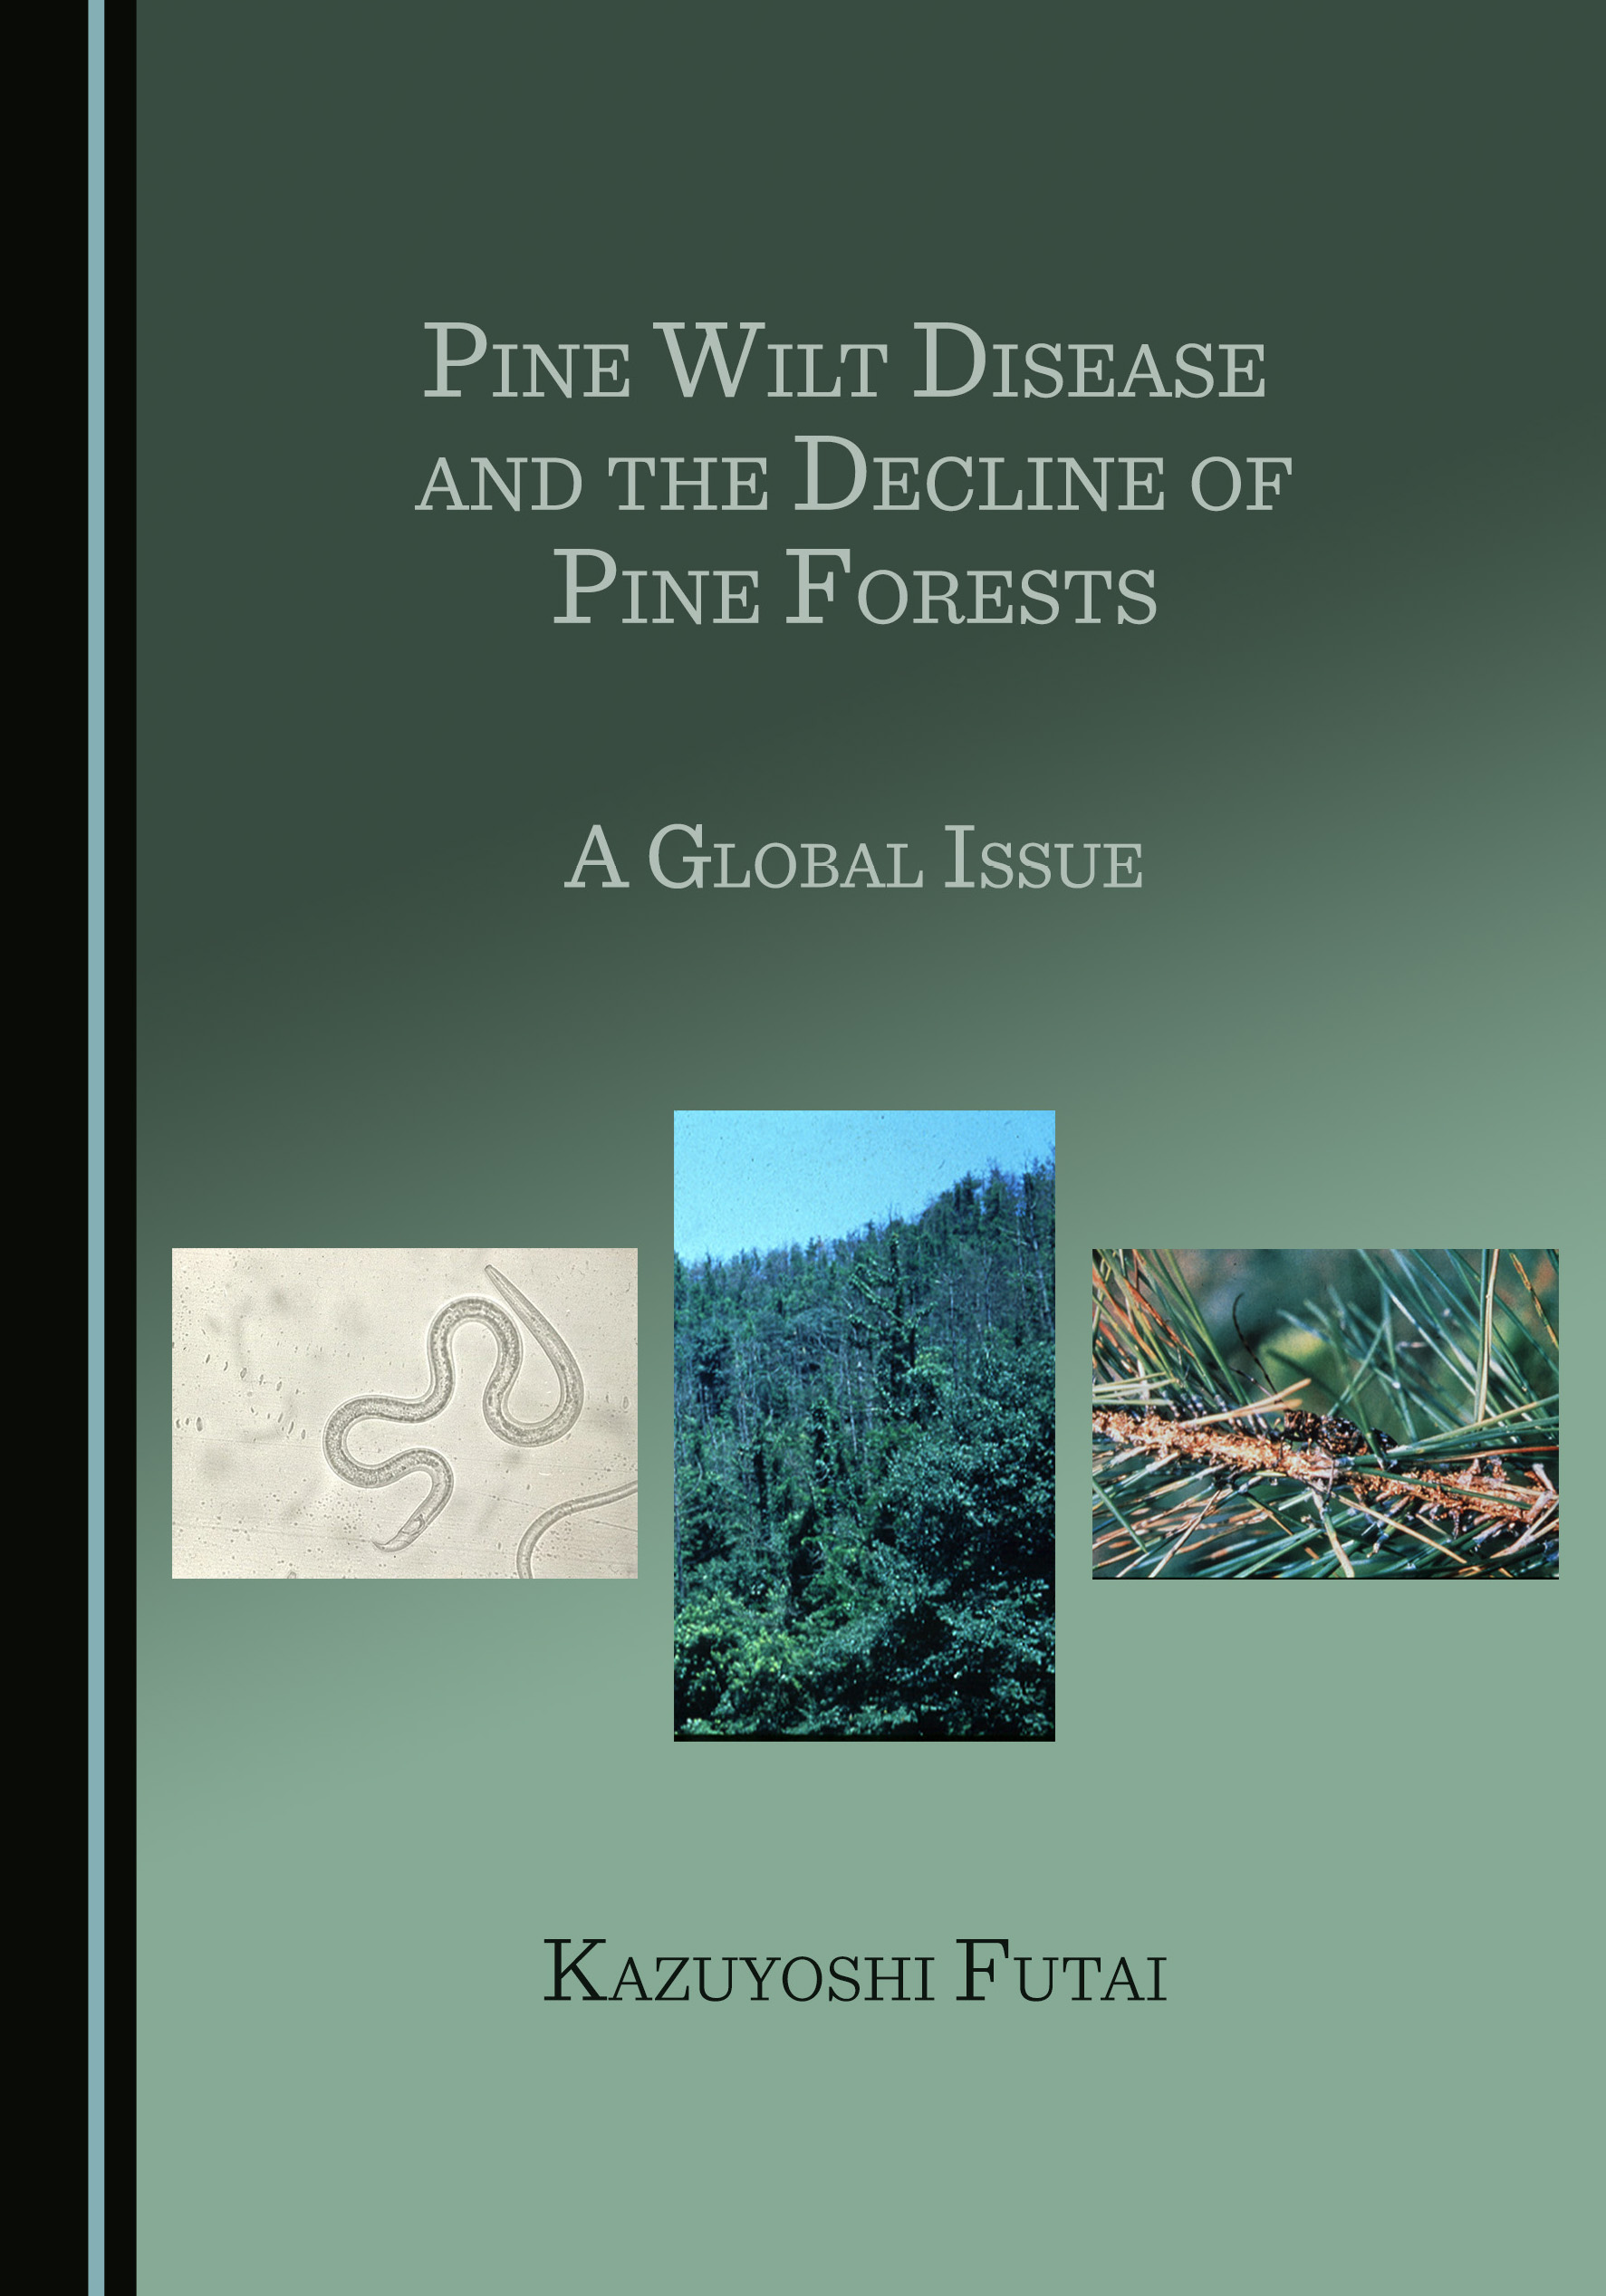 Pine Wilt Disease and the Decline of Pine Forests: A Global Issue